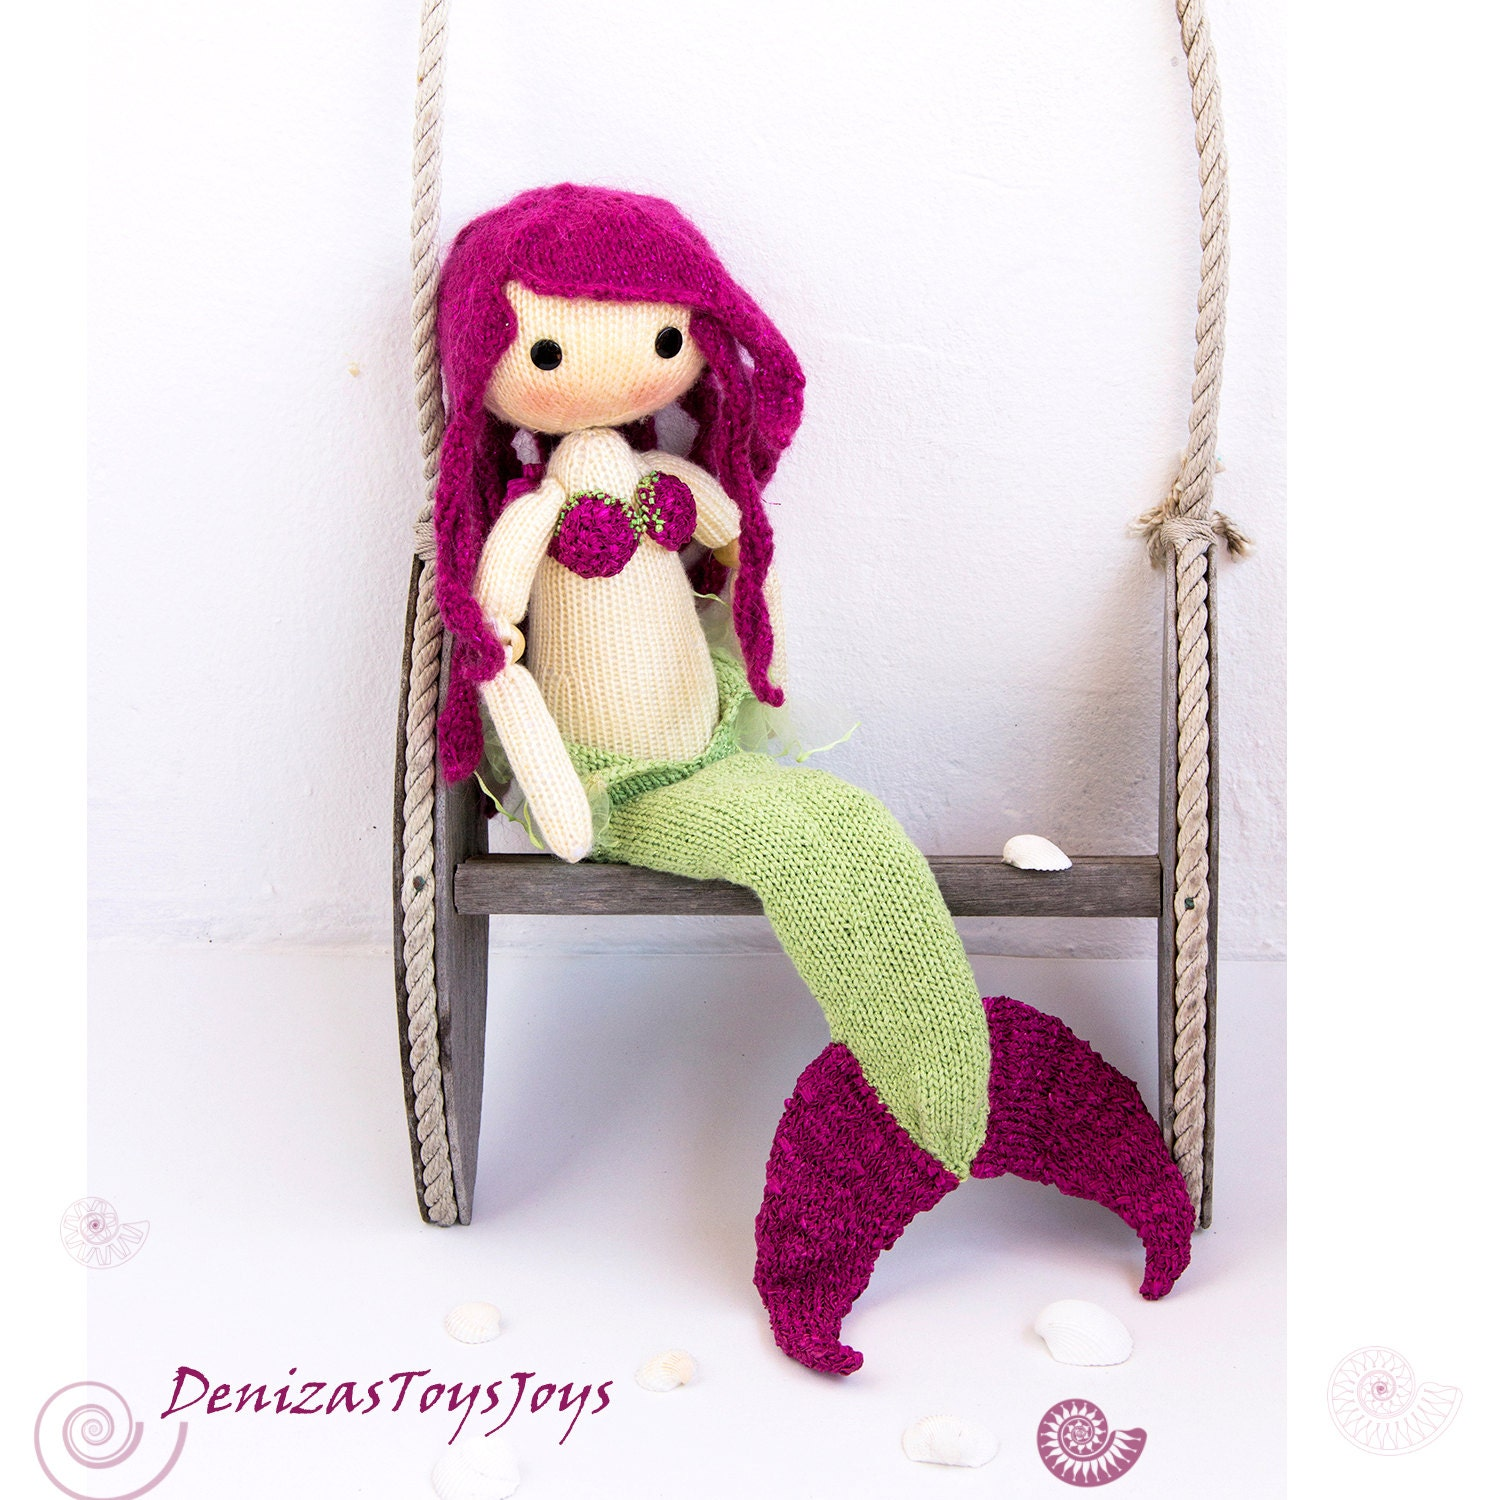 Knitting Toys In The Round : Mermaid doll pdf knitting pattern knitted in the round